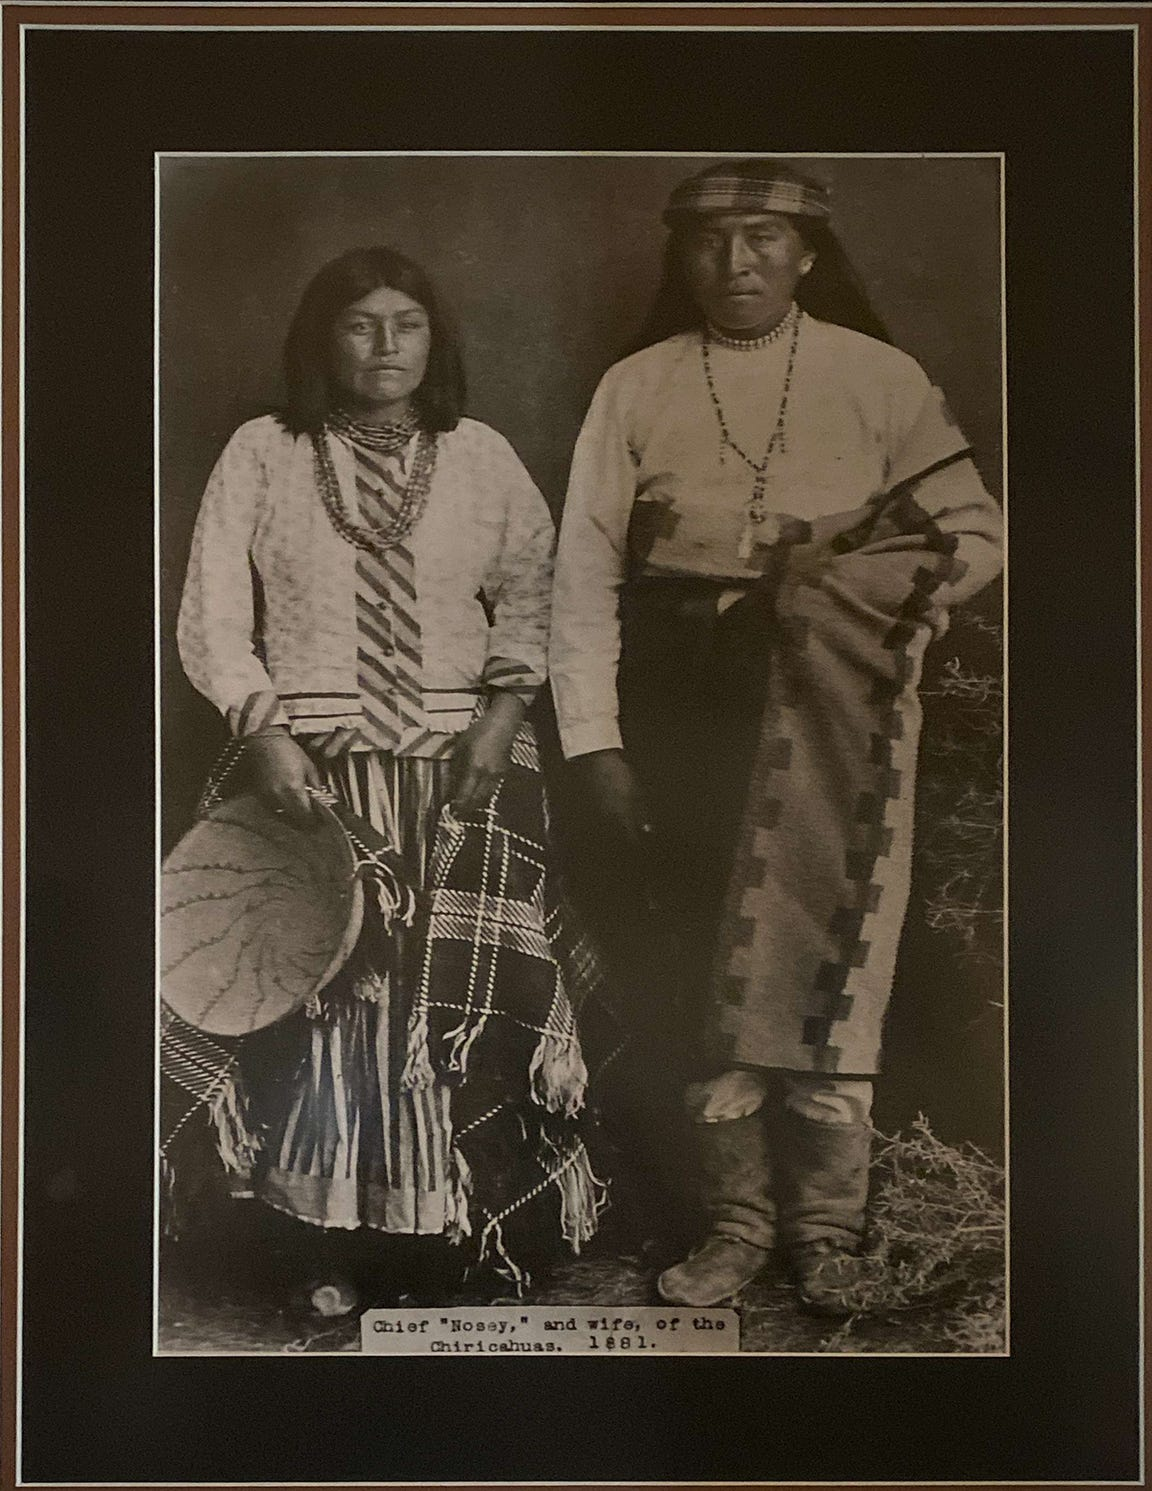 Chief Nosey of the Chiricahua and his wife in 1881. Nosey is the great-grandfather of Apache environmental activist Wendsler Nosie, Sr.